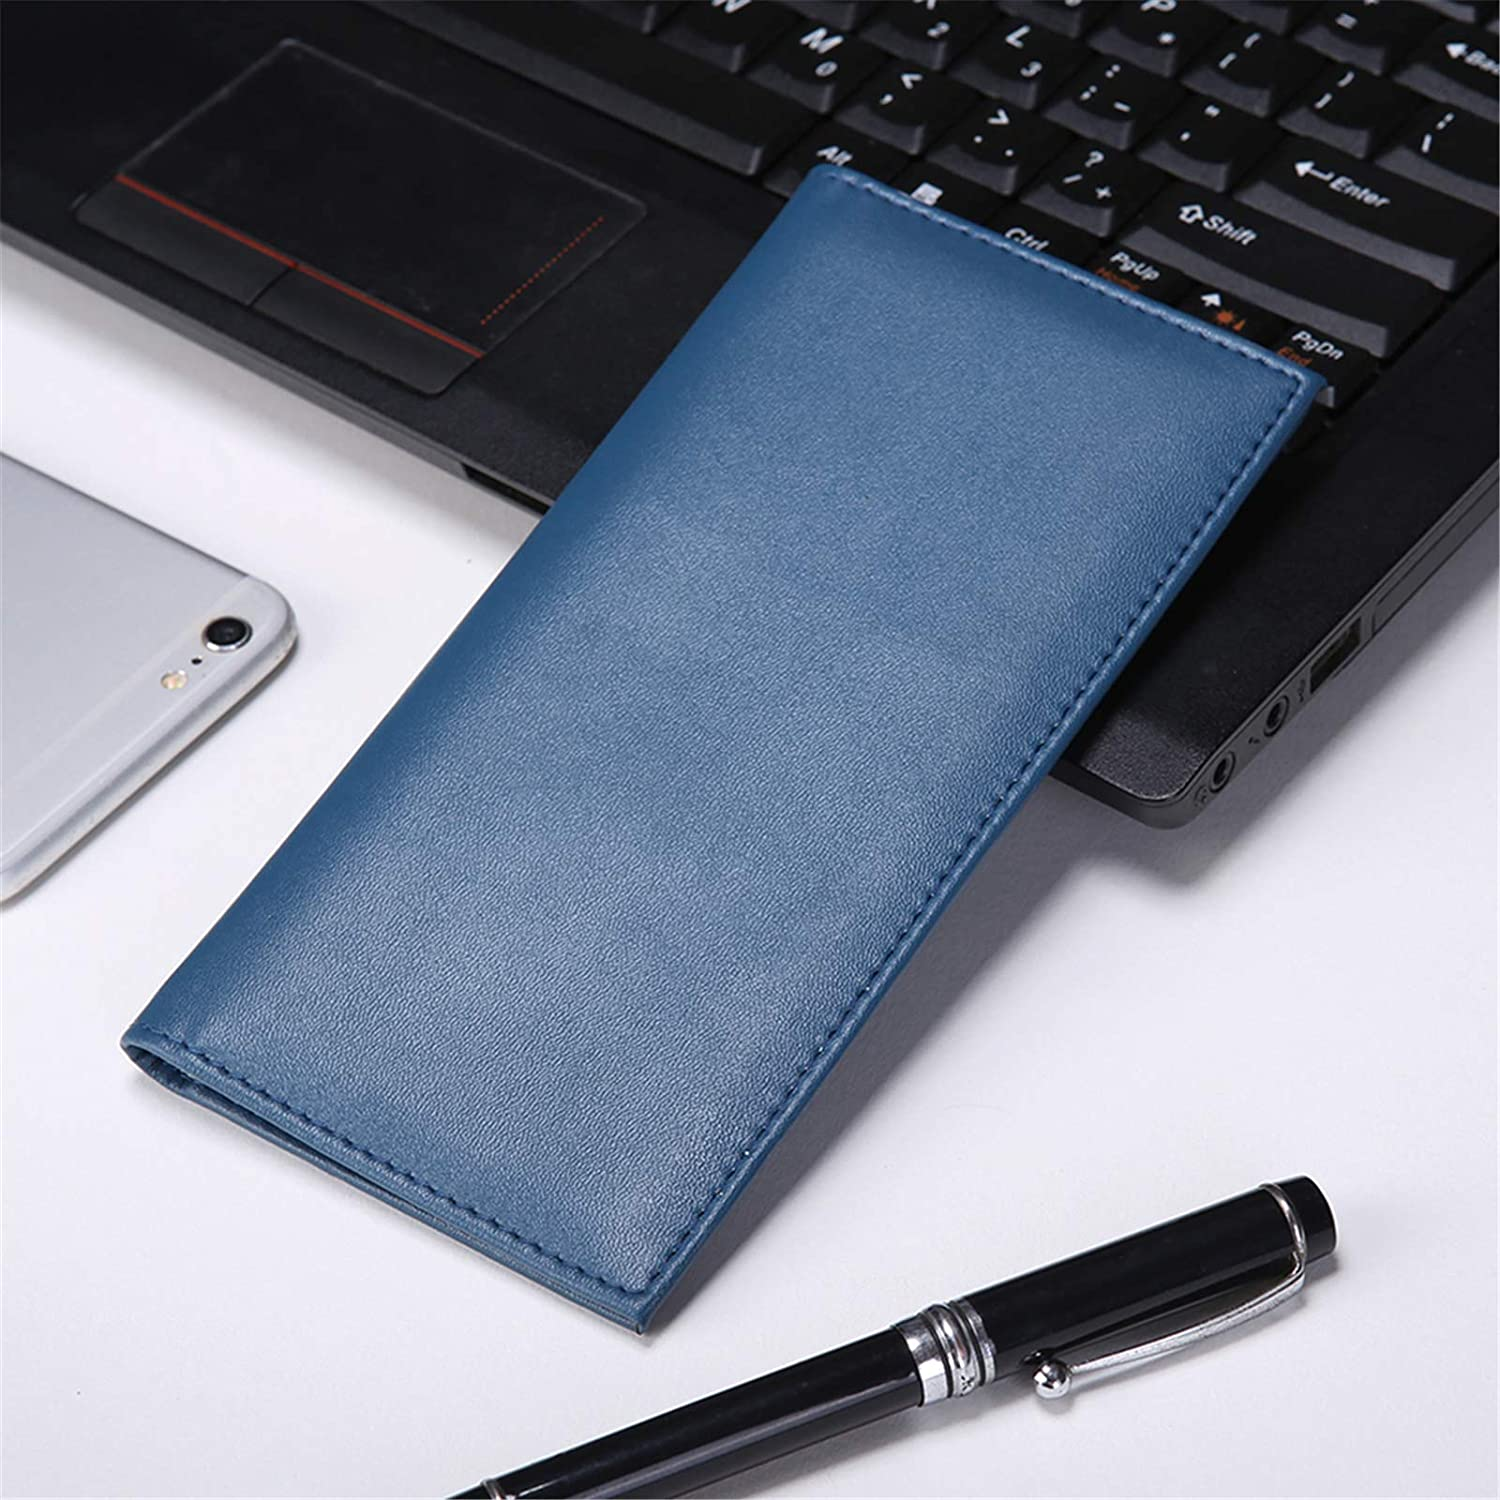 Kookio Leather Checkbook Cover for Register Duplicate Checks Slim Wallet with Pen Holder and Card Slot for Men Women: Clothing